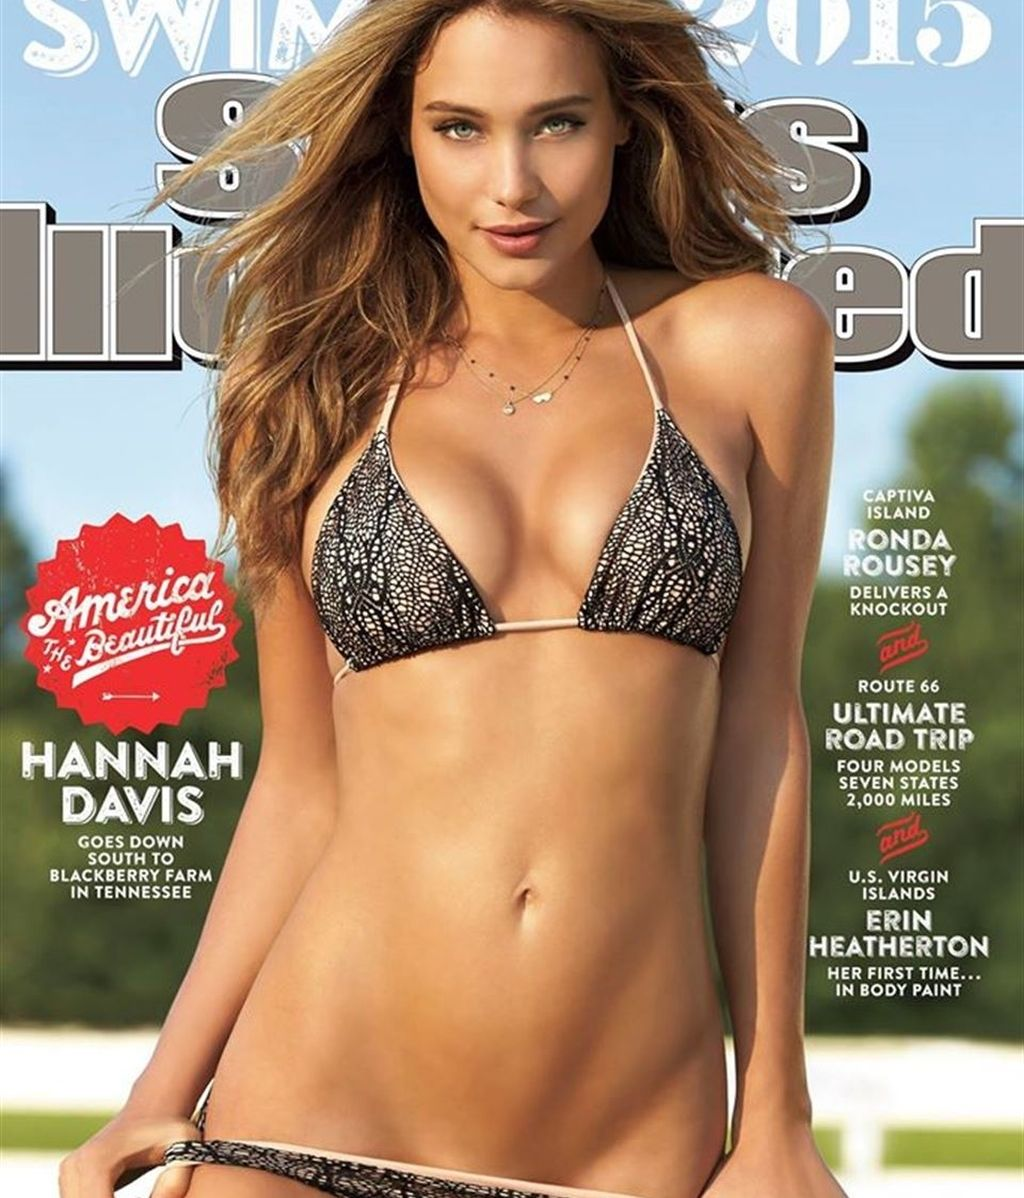 Hannah Davis, portada de 'Sports Illustrated'